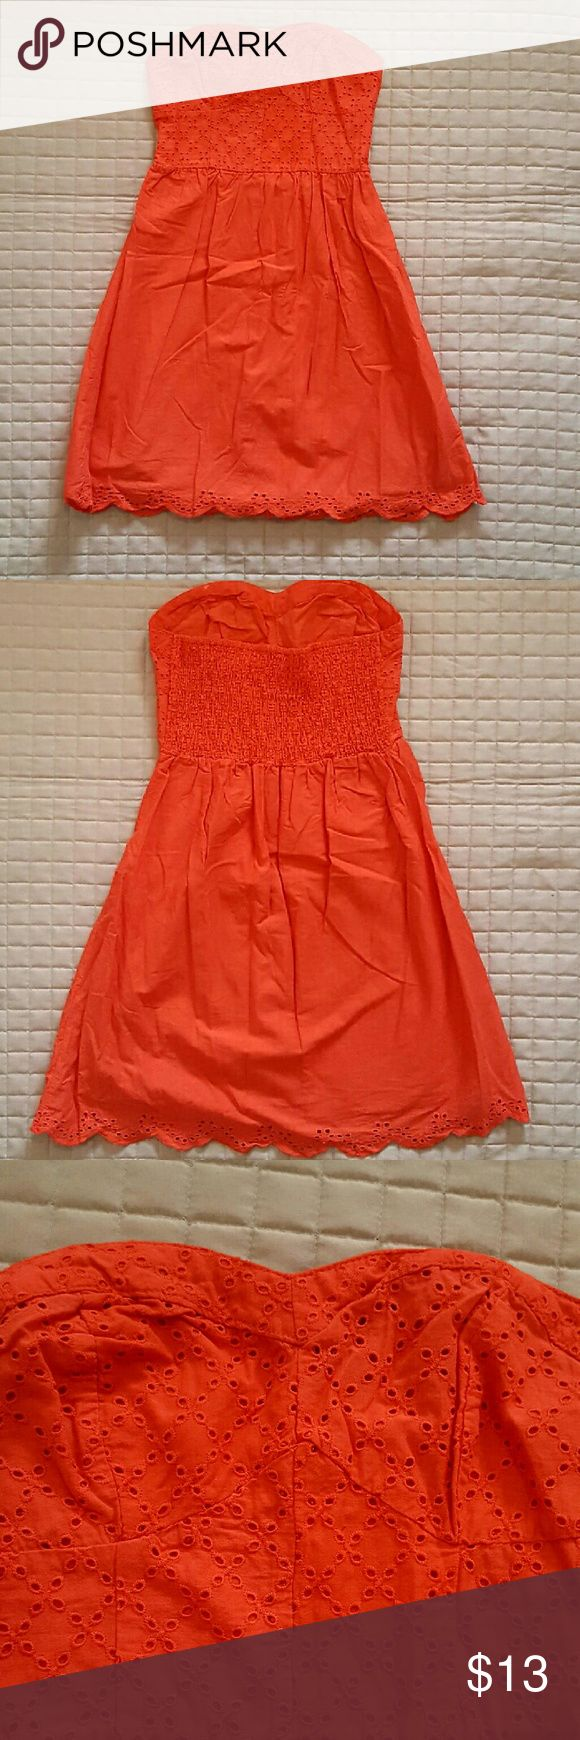 Strapless Coral Sundress Strapless sundress with eyelet detail and lined skirt. Perfect for summer! Dresses Strapless